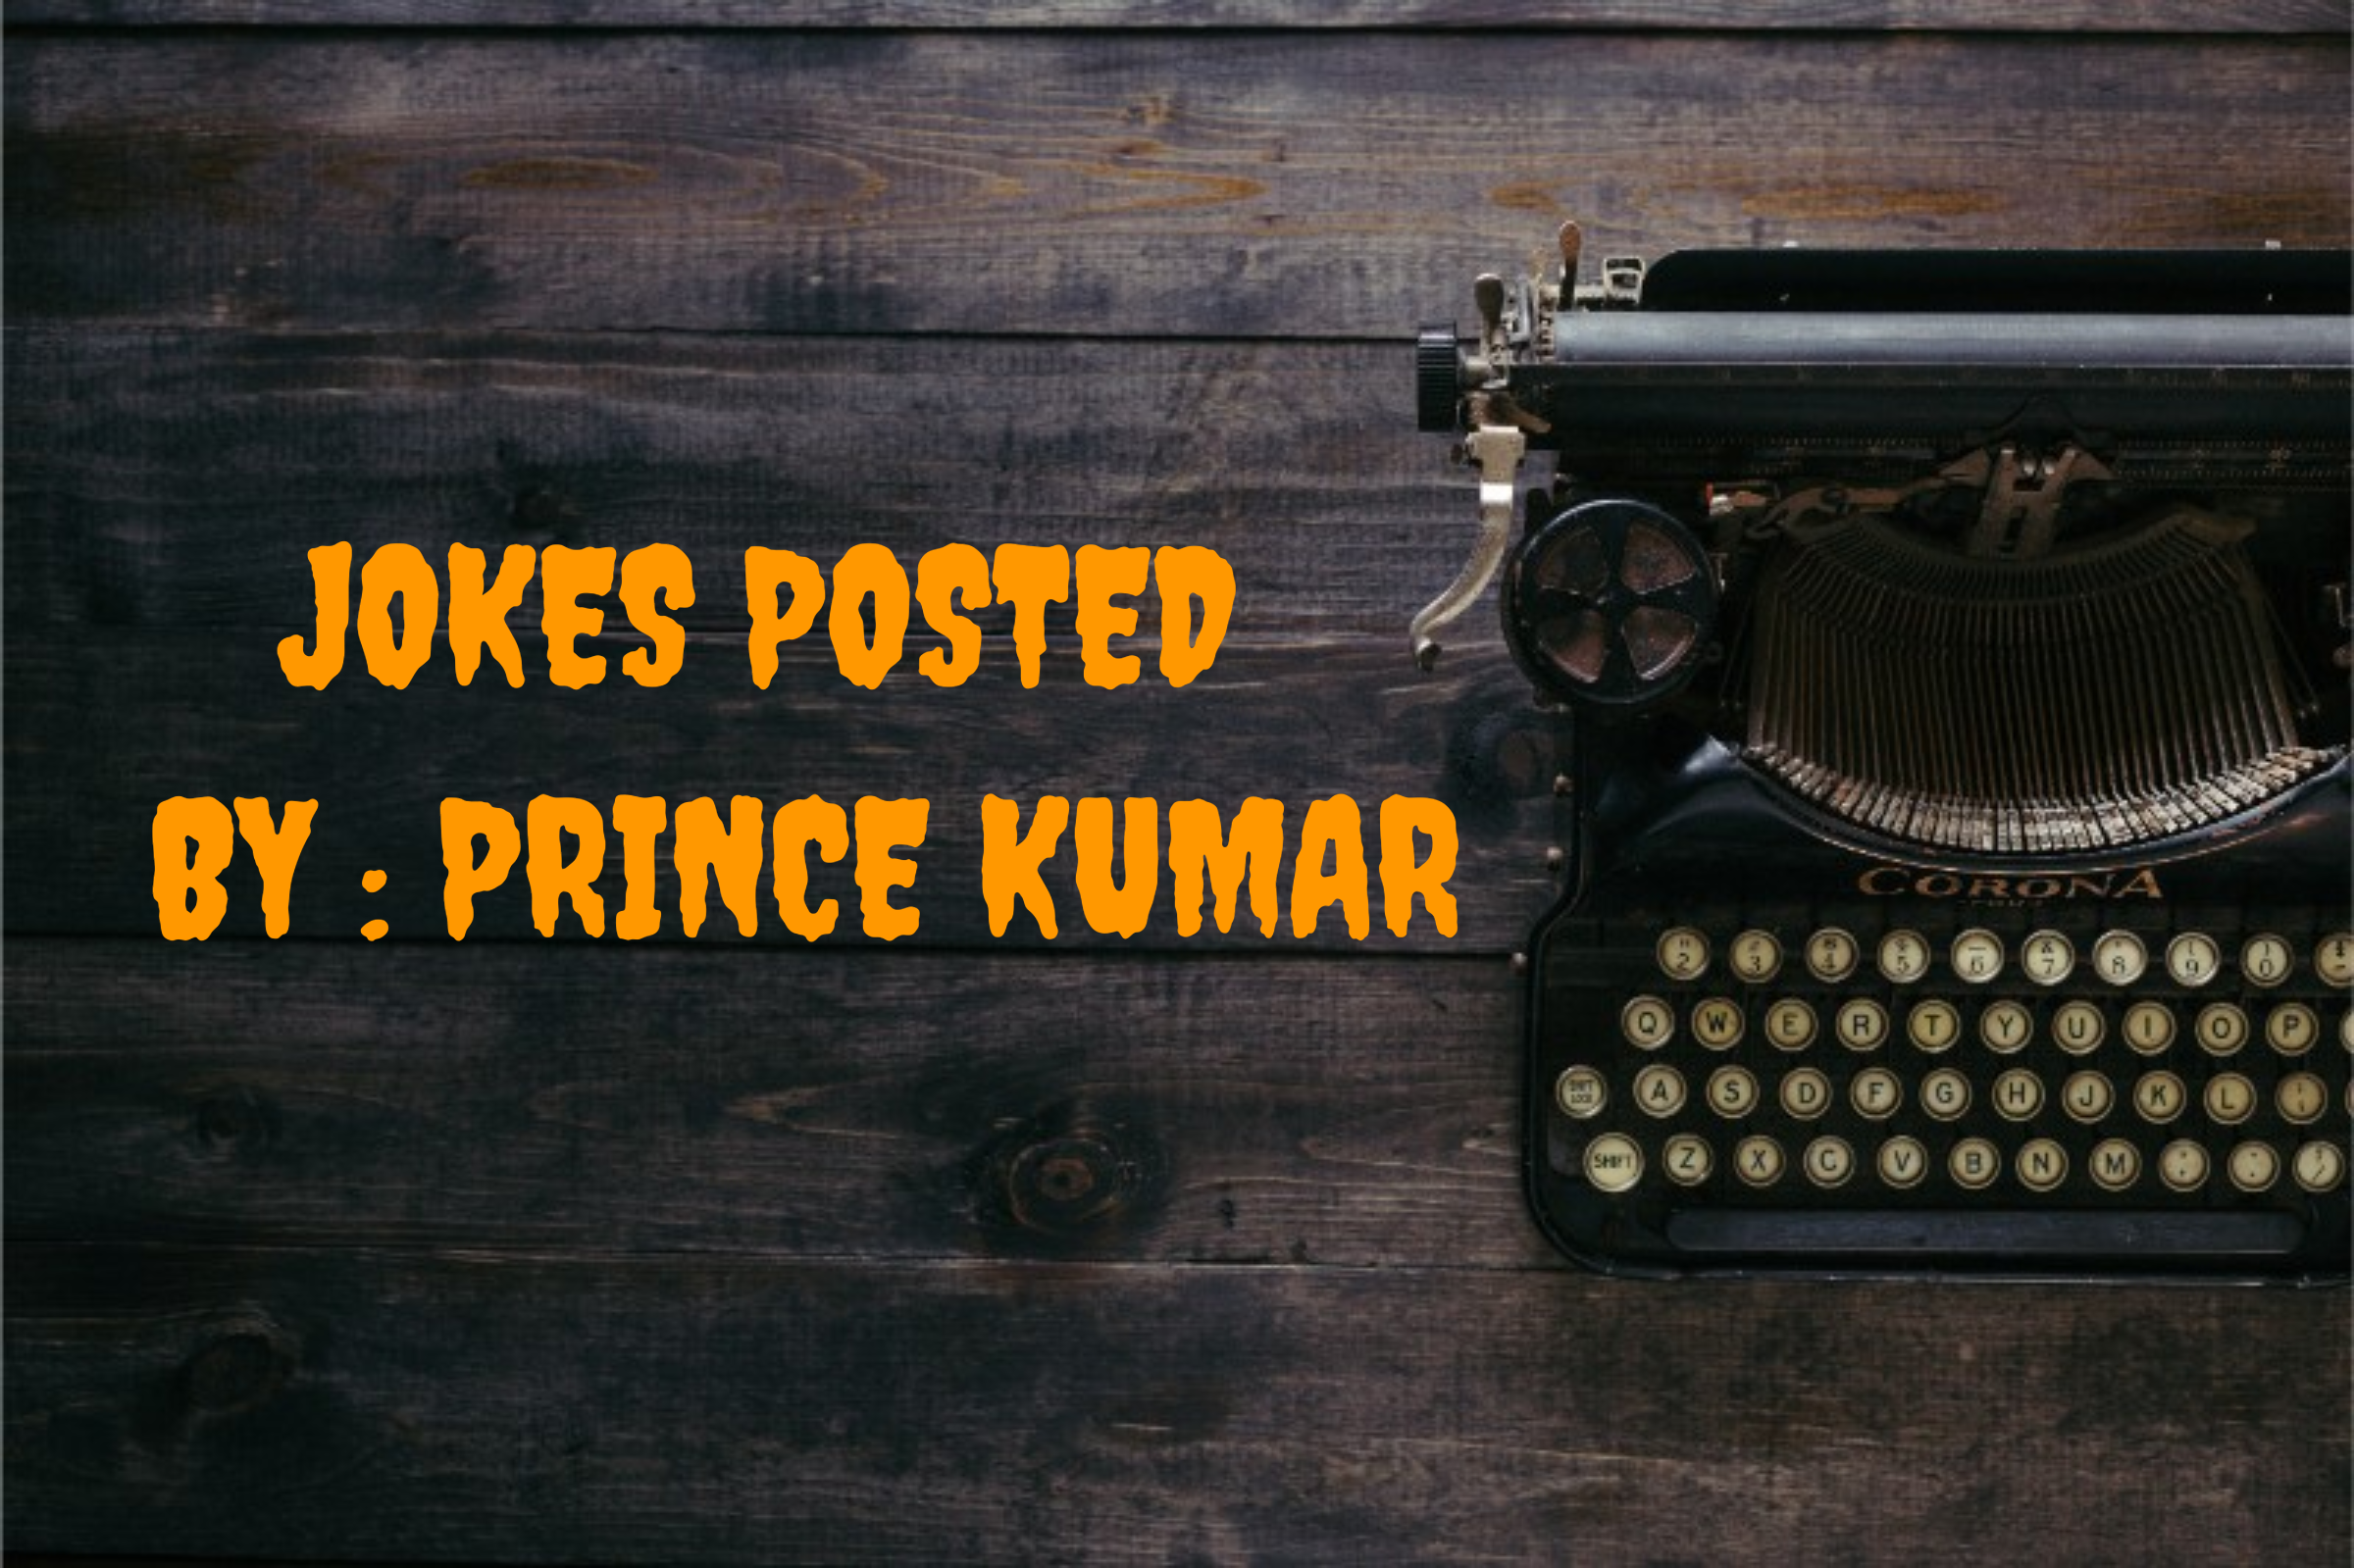 2. JOKES POSTED BY PRINCE KUMAR